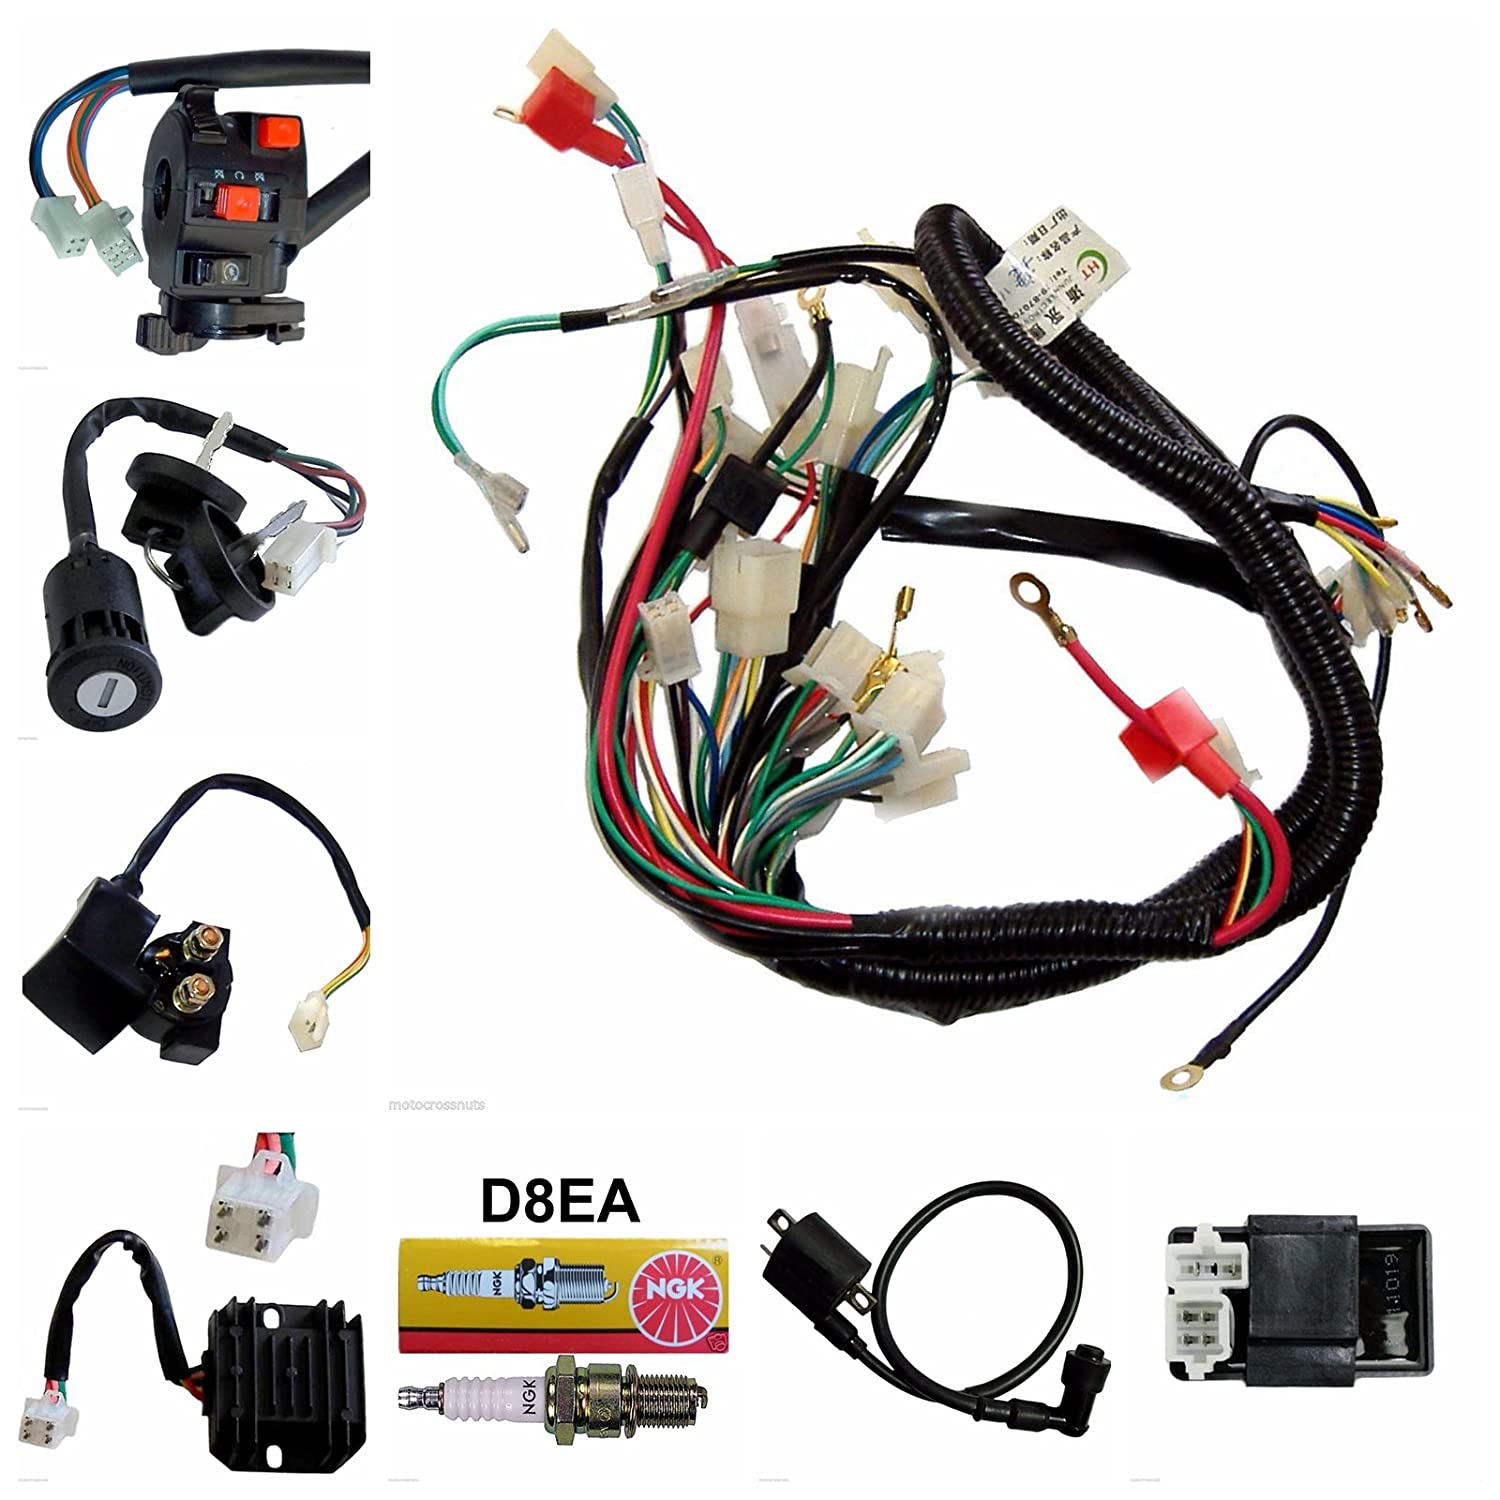 Complete Wiring Harness Kit Loom Full Electrics Stator Coil Ac Type Loncin 200cc Atv Diagram Cdi For Quad 4 Four Wheelers 150cc 250cc Go Kart Electrical Amazon Canada